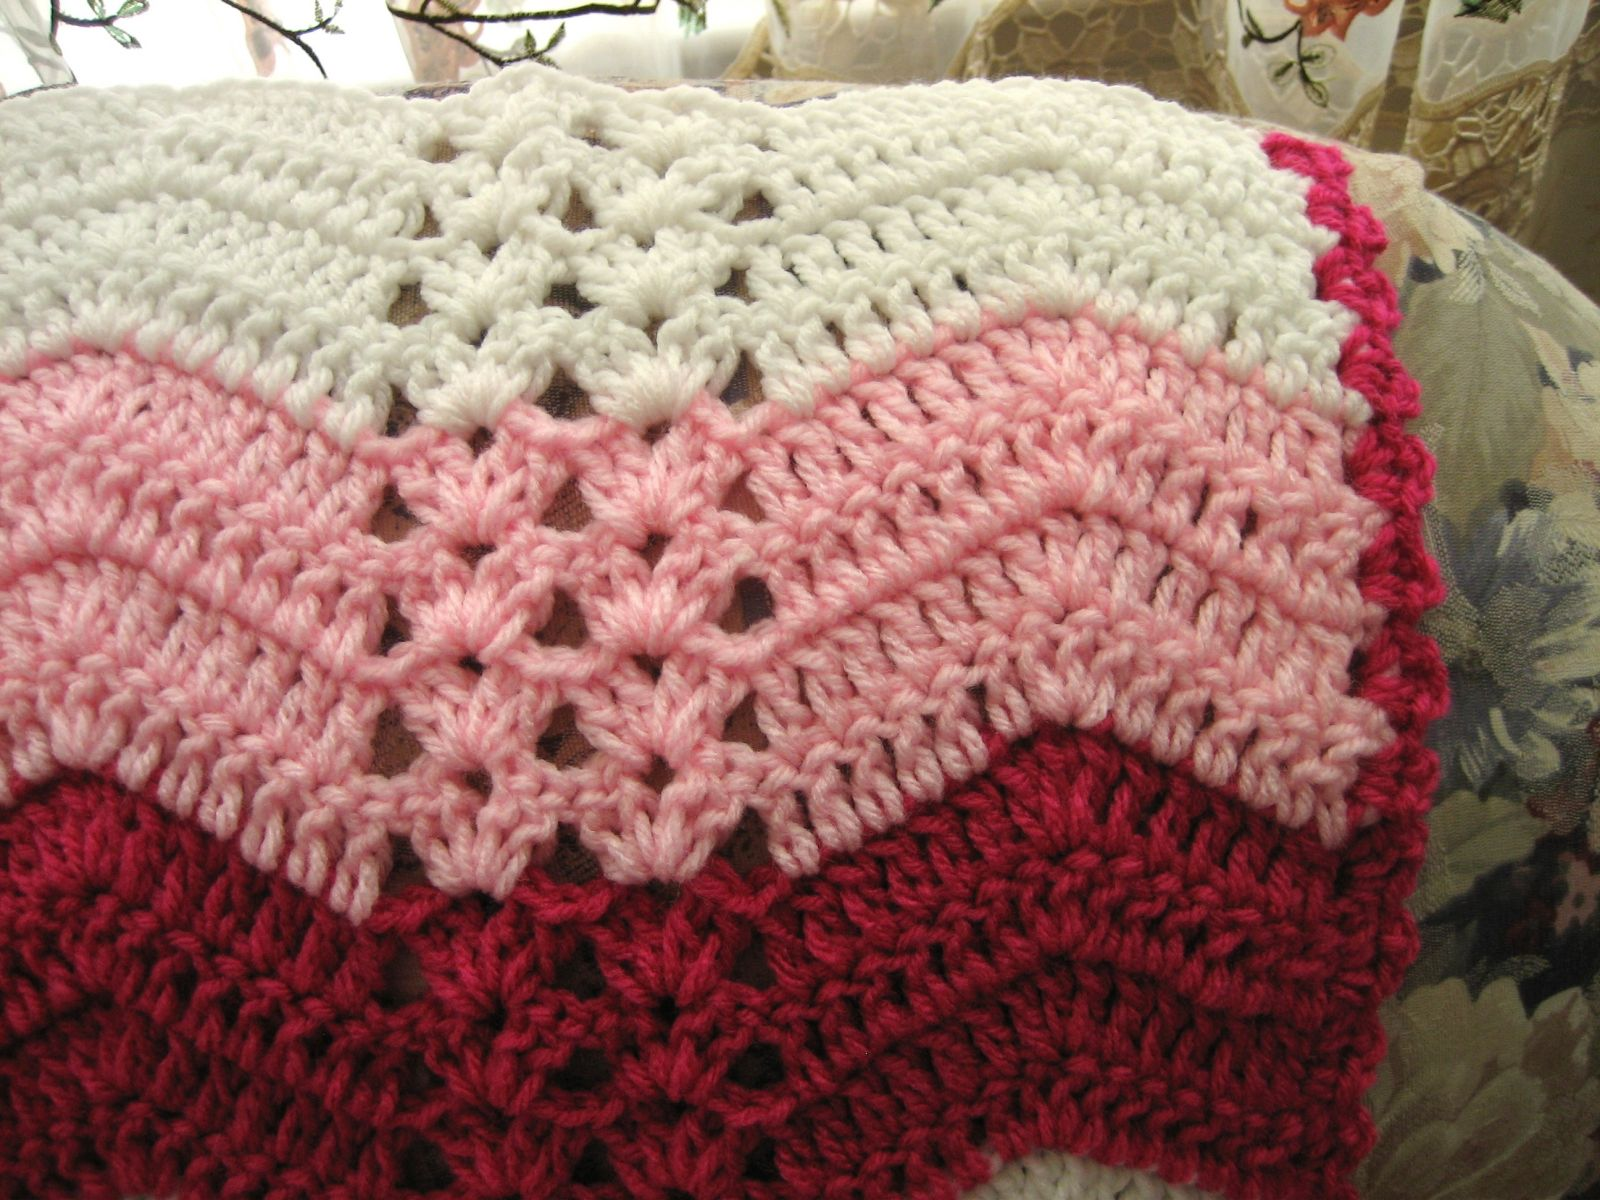 Crocheting An Afghan : Afghan Aran Crochet Free Pattern ? Crochet Patterns